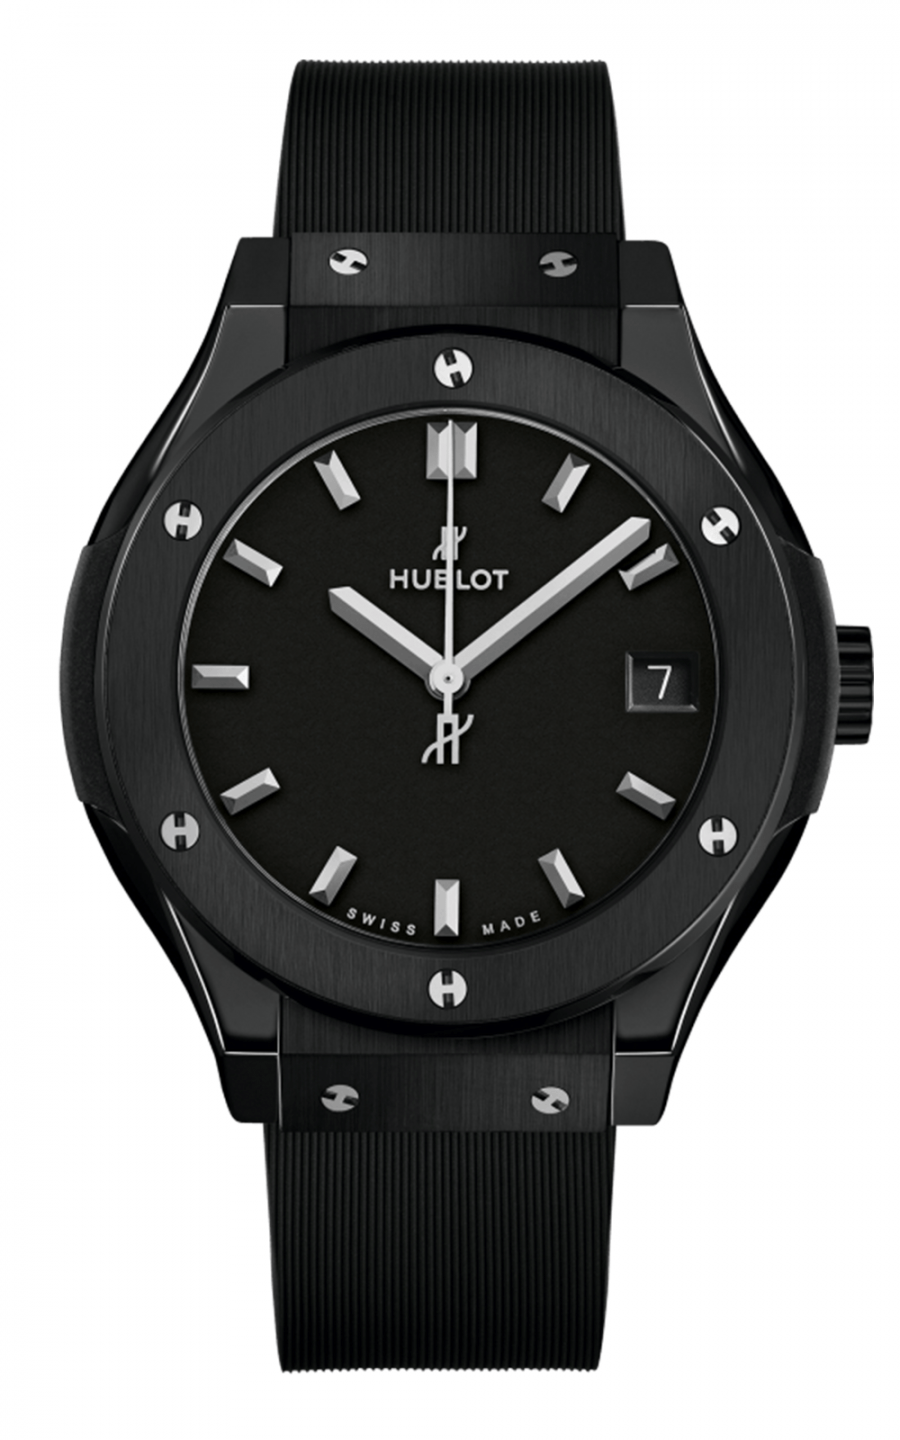 Hình Đồng hồ Hublot Classic Fusion Black Magic 33mm 581.CM.1171.RX